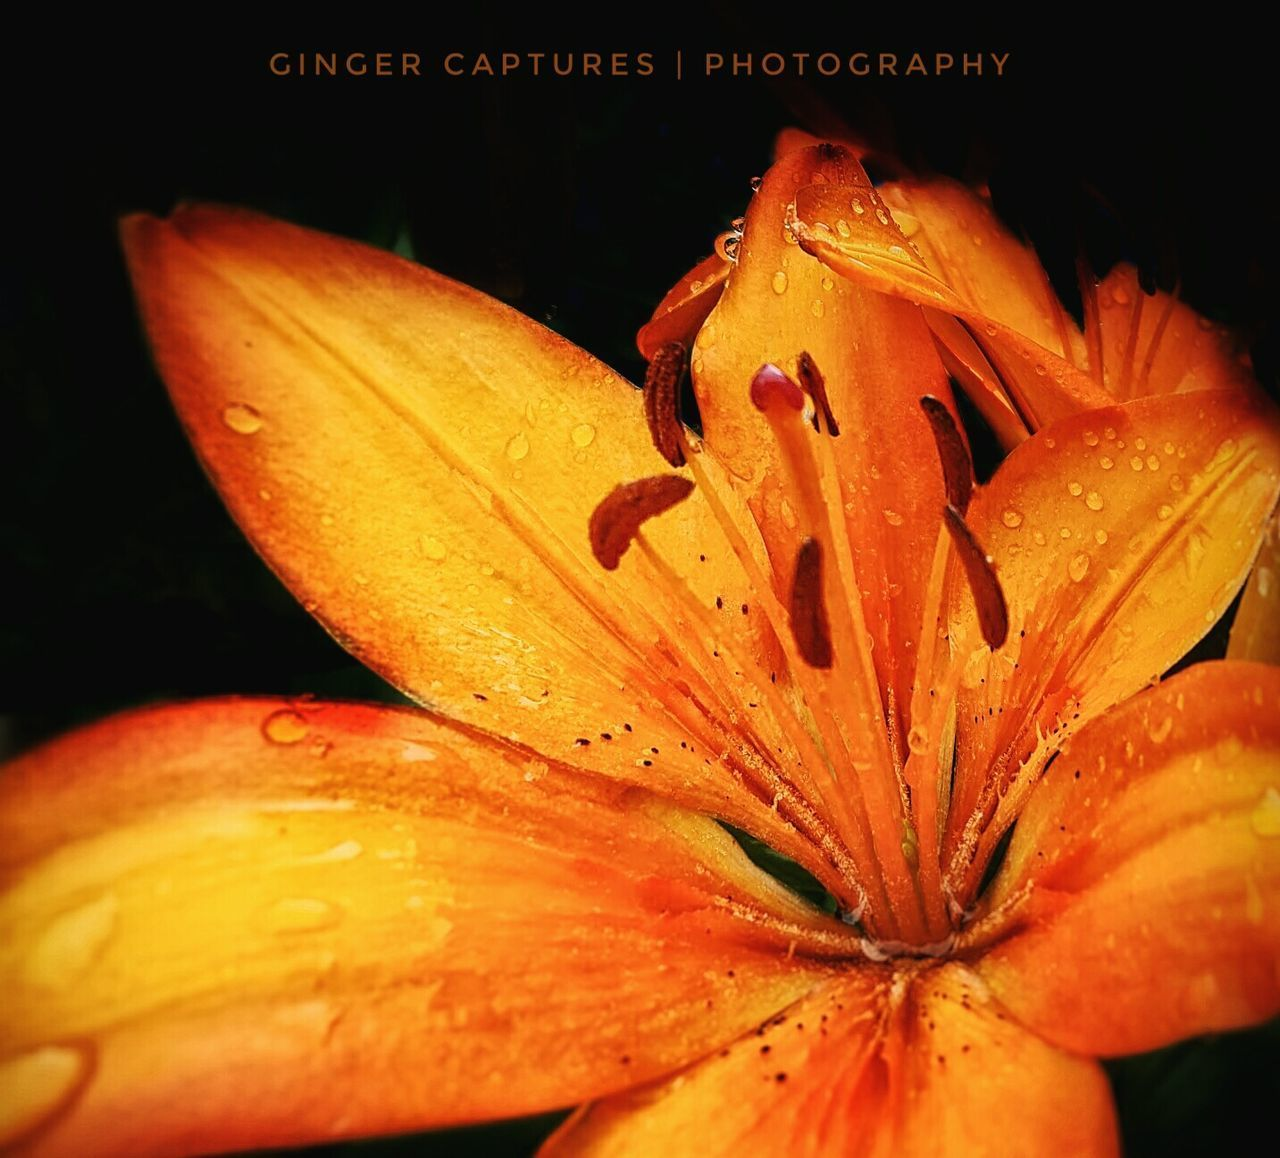 Golden Lilly - Petal Flower Nature Fragility Orange Color Flower Head Beauty In Nature Close-up Outdoors Eyeemphotography Macrophotography Macro_captures Macro Beauty Macro_collection Macro Photography Macro Macroporn MyPhotography Dark Photography EyeEm Best Shots Nature_collection Black Background Nature Photography Moodygram Beautiful Nature